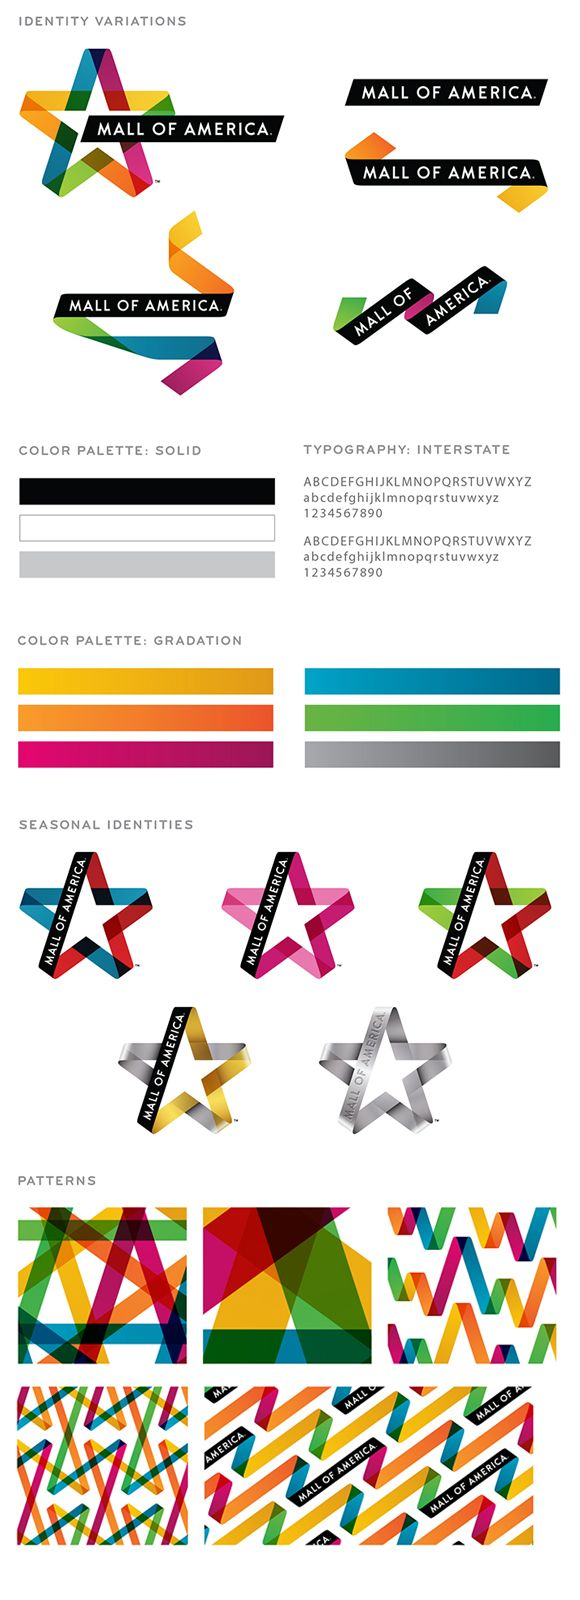 Best 25 mall of america ideas on pinterest great america graphic design inspiration resources freebies jameslax Images